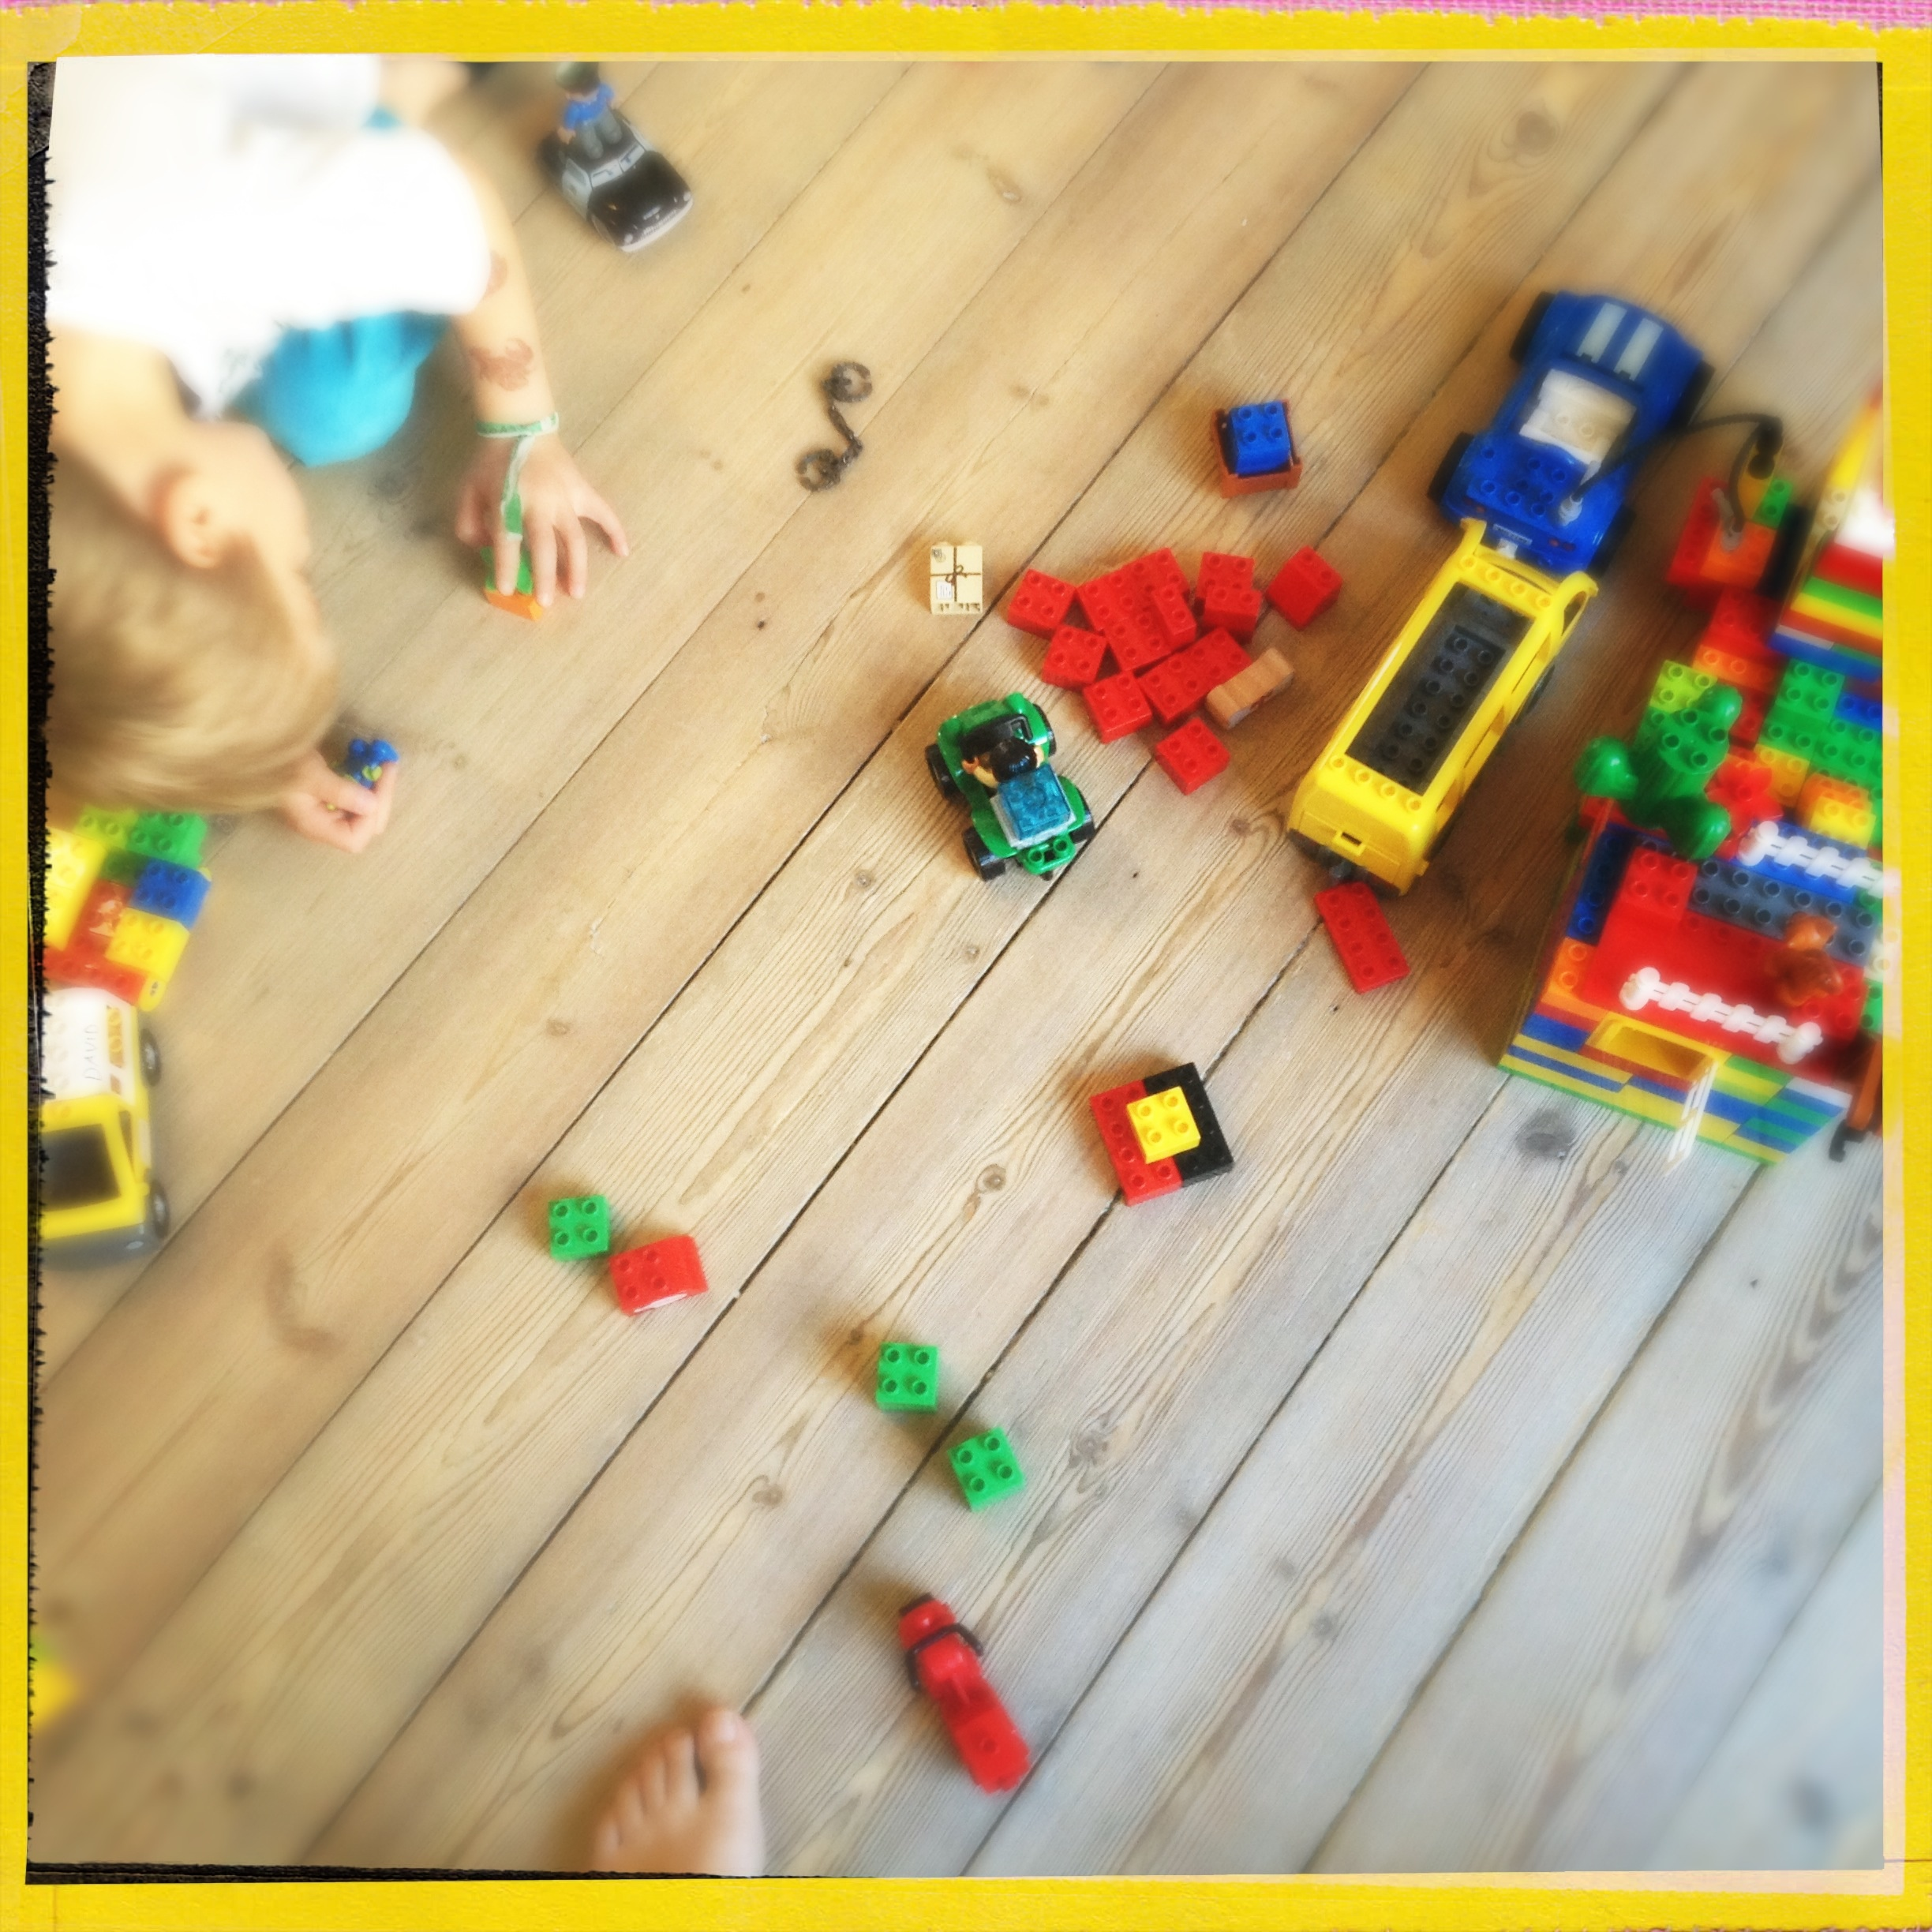 Boy playing with lego on natural wooden floor